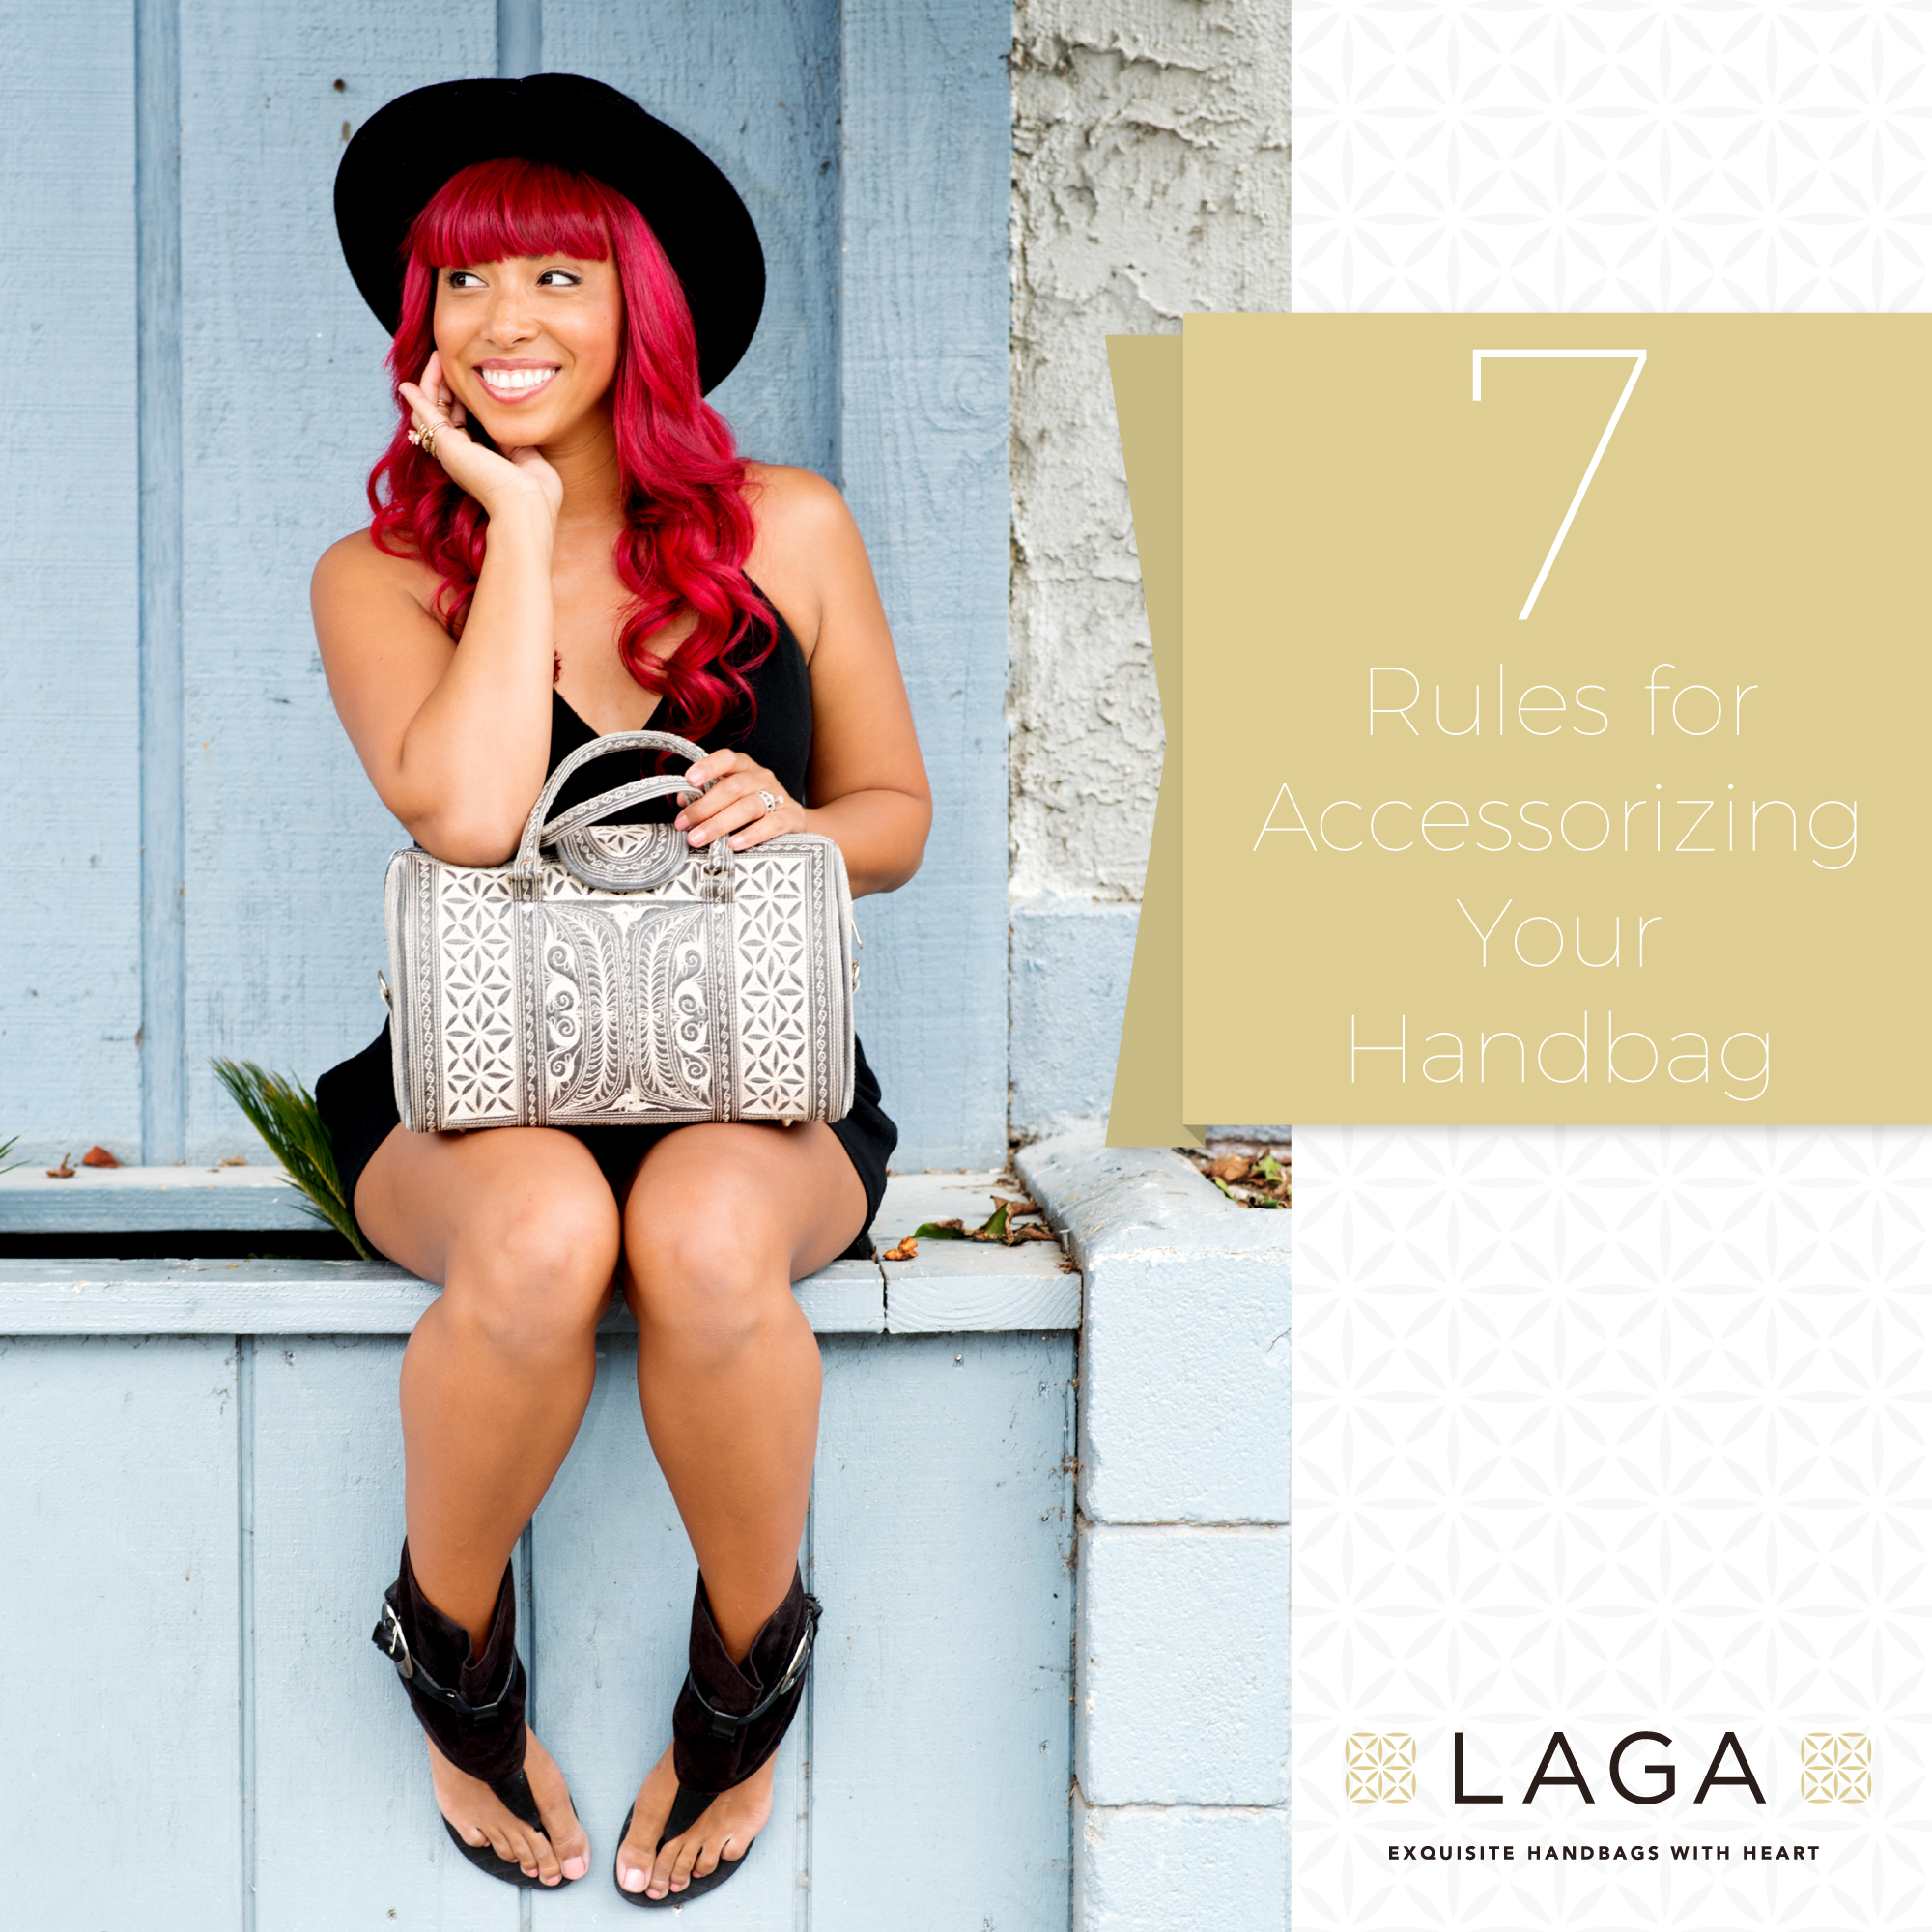 Laga Handbags | 7 Rules for Accessorizing your Handbag